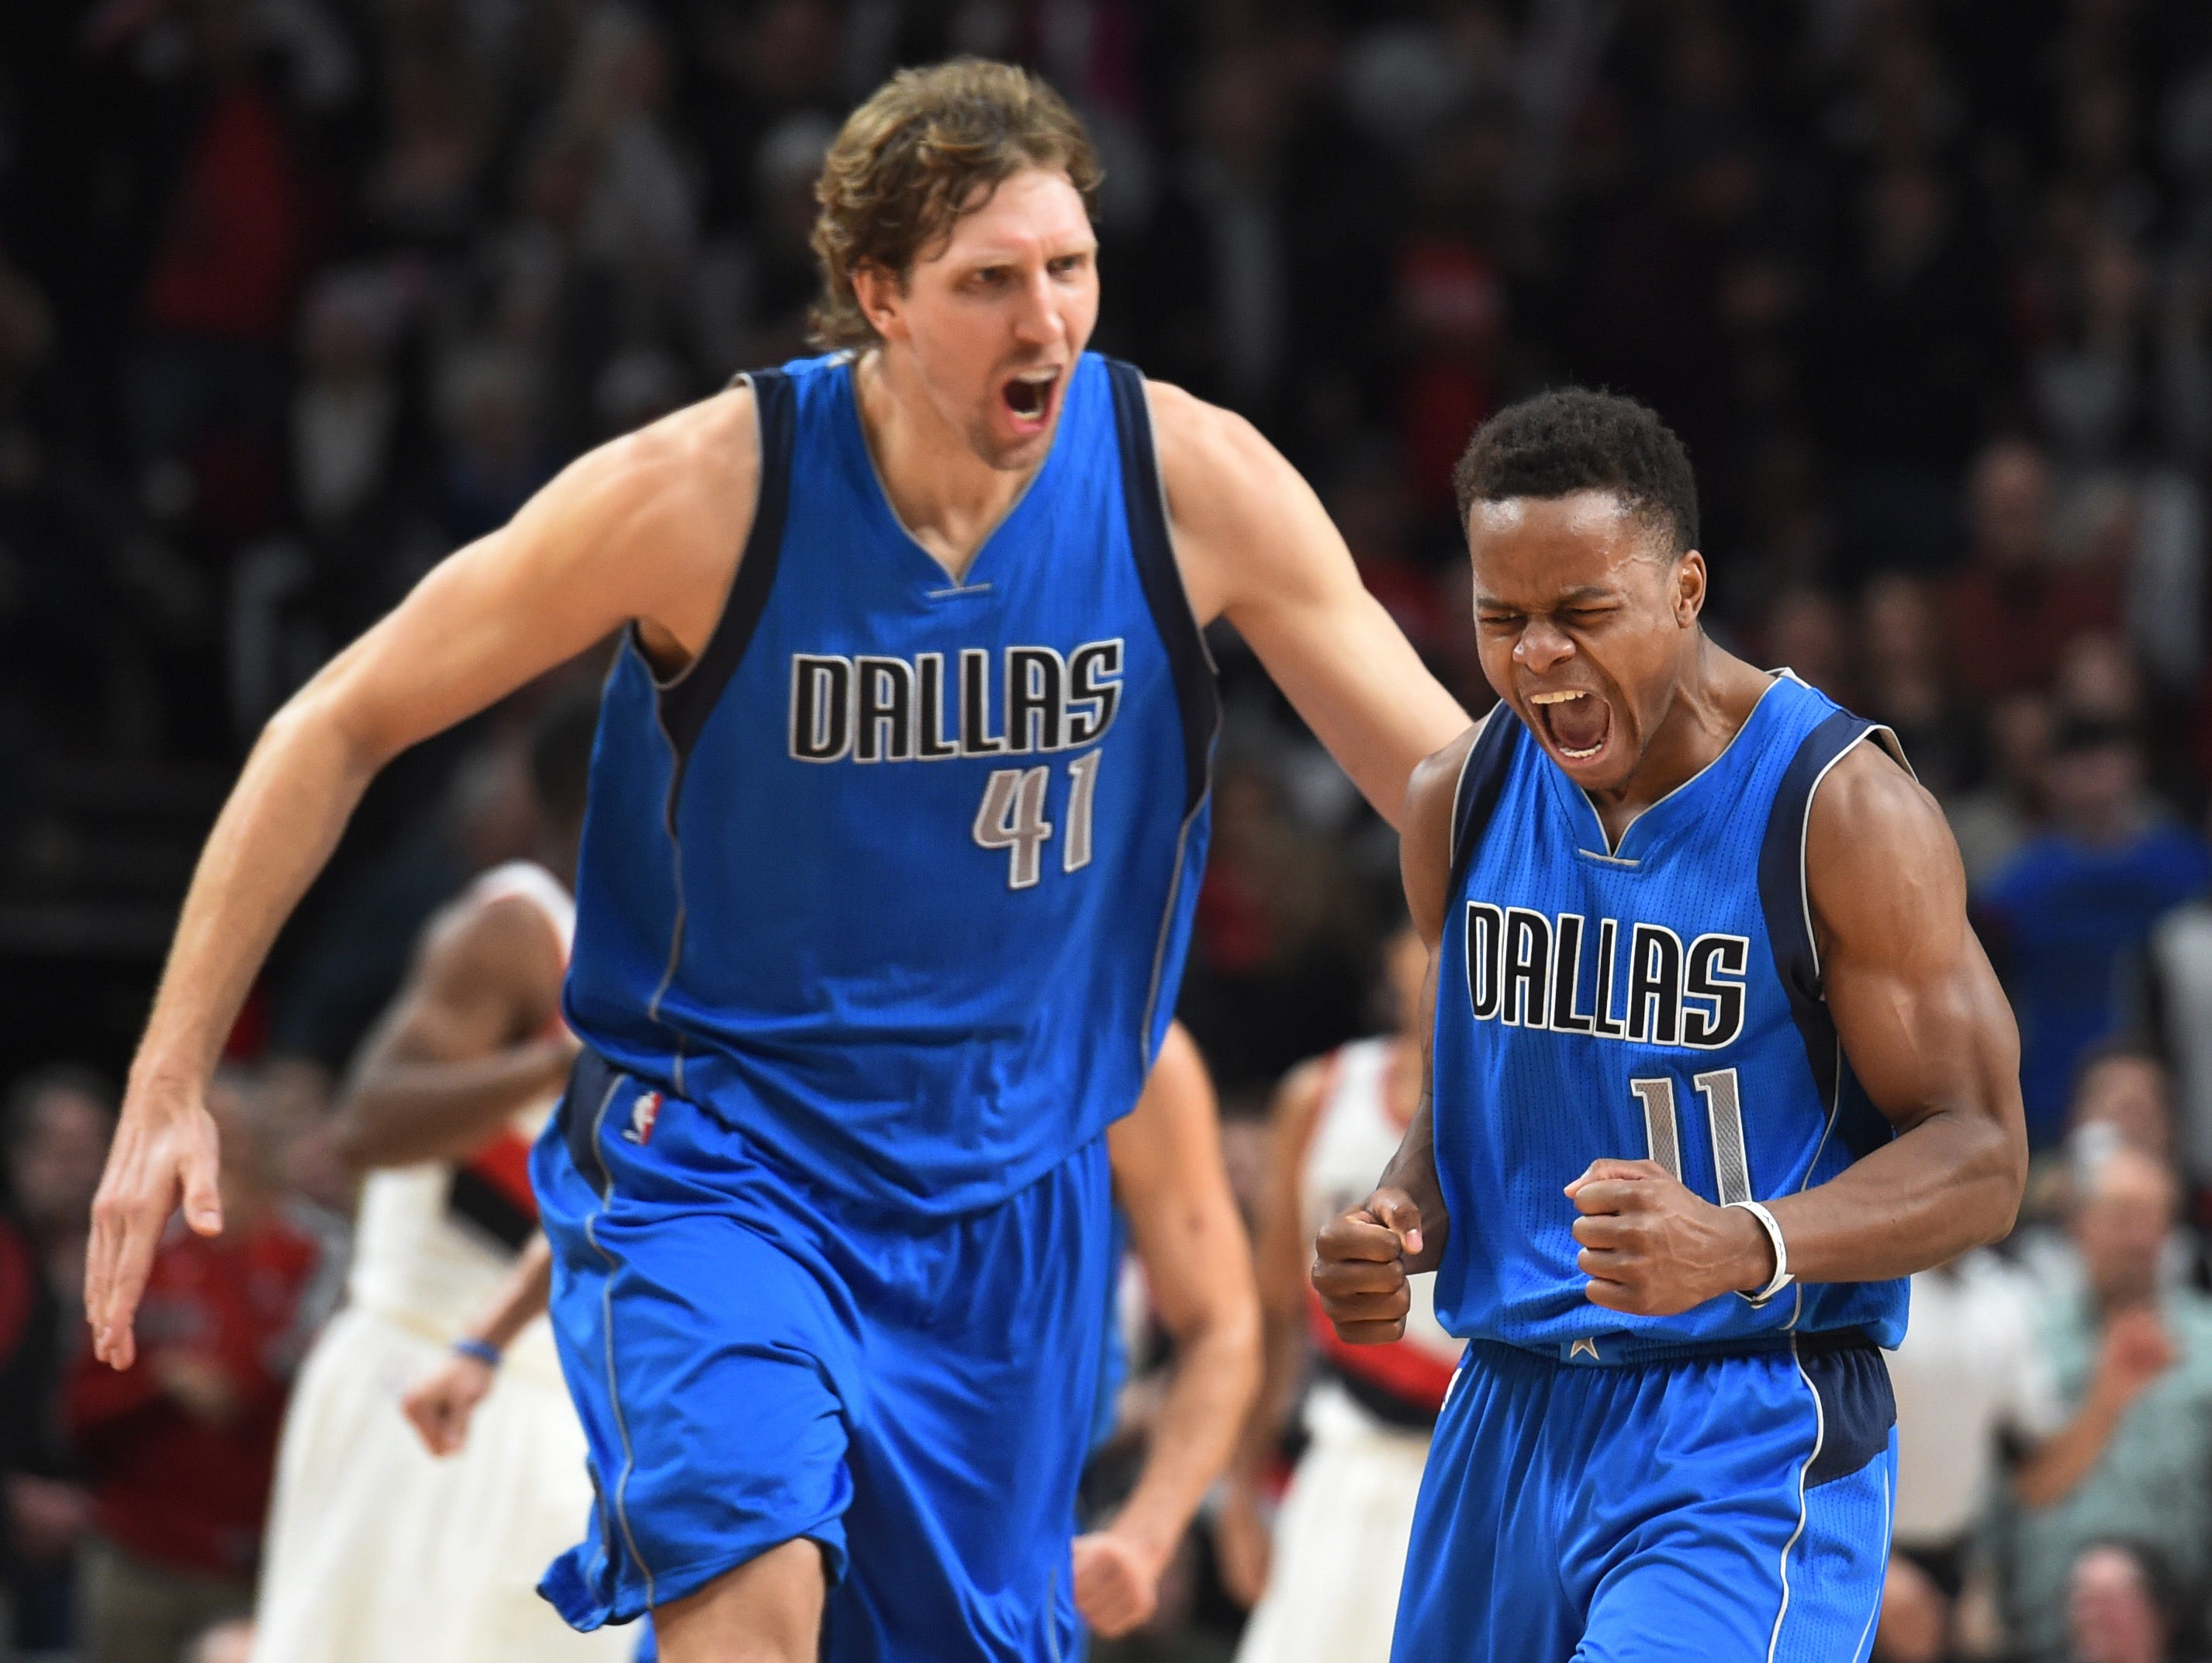 Dallas Mavericks guard Yogi Ferrell celebrates with forward Dirk Nowitzki after hitting a shot late in the fourth quarter of the game against the Portland Trail Blazers at the Moda Center. Dallas won the game 108-104.